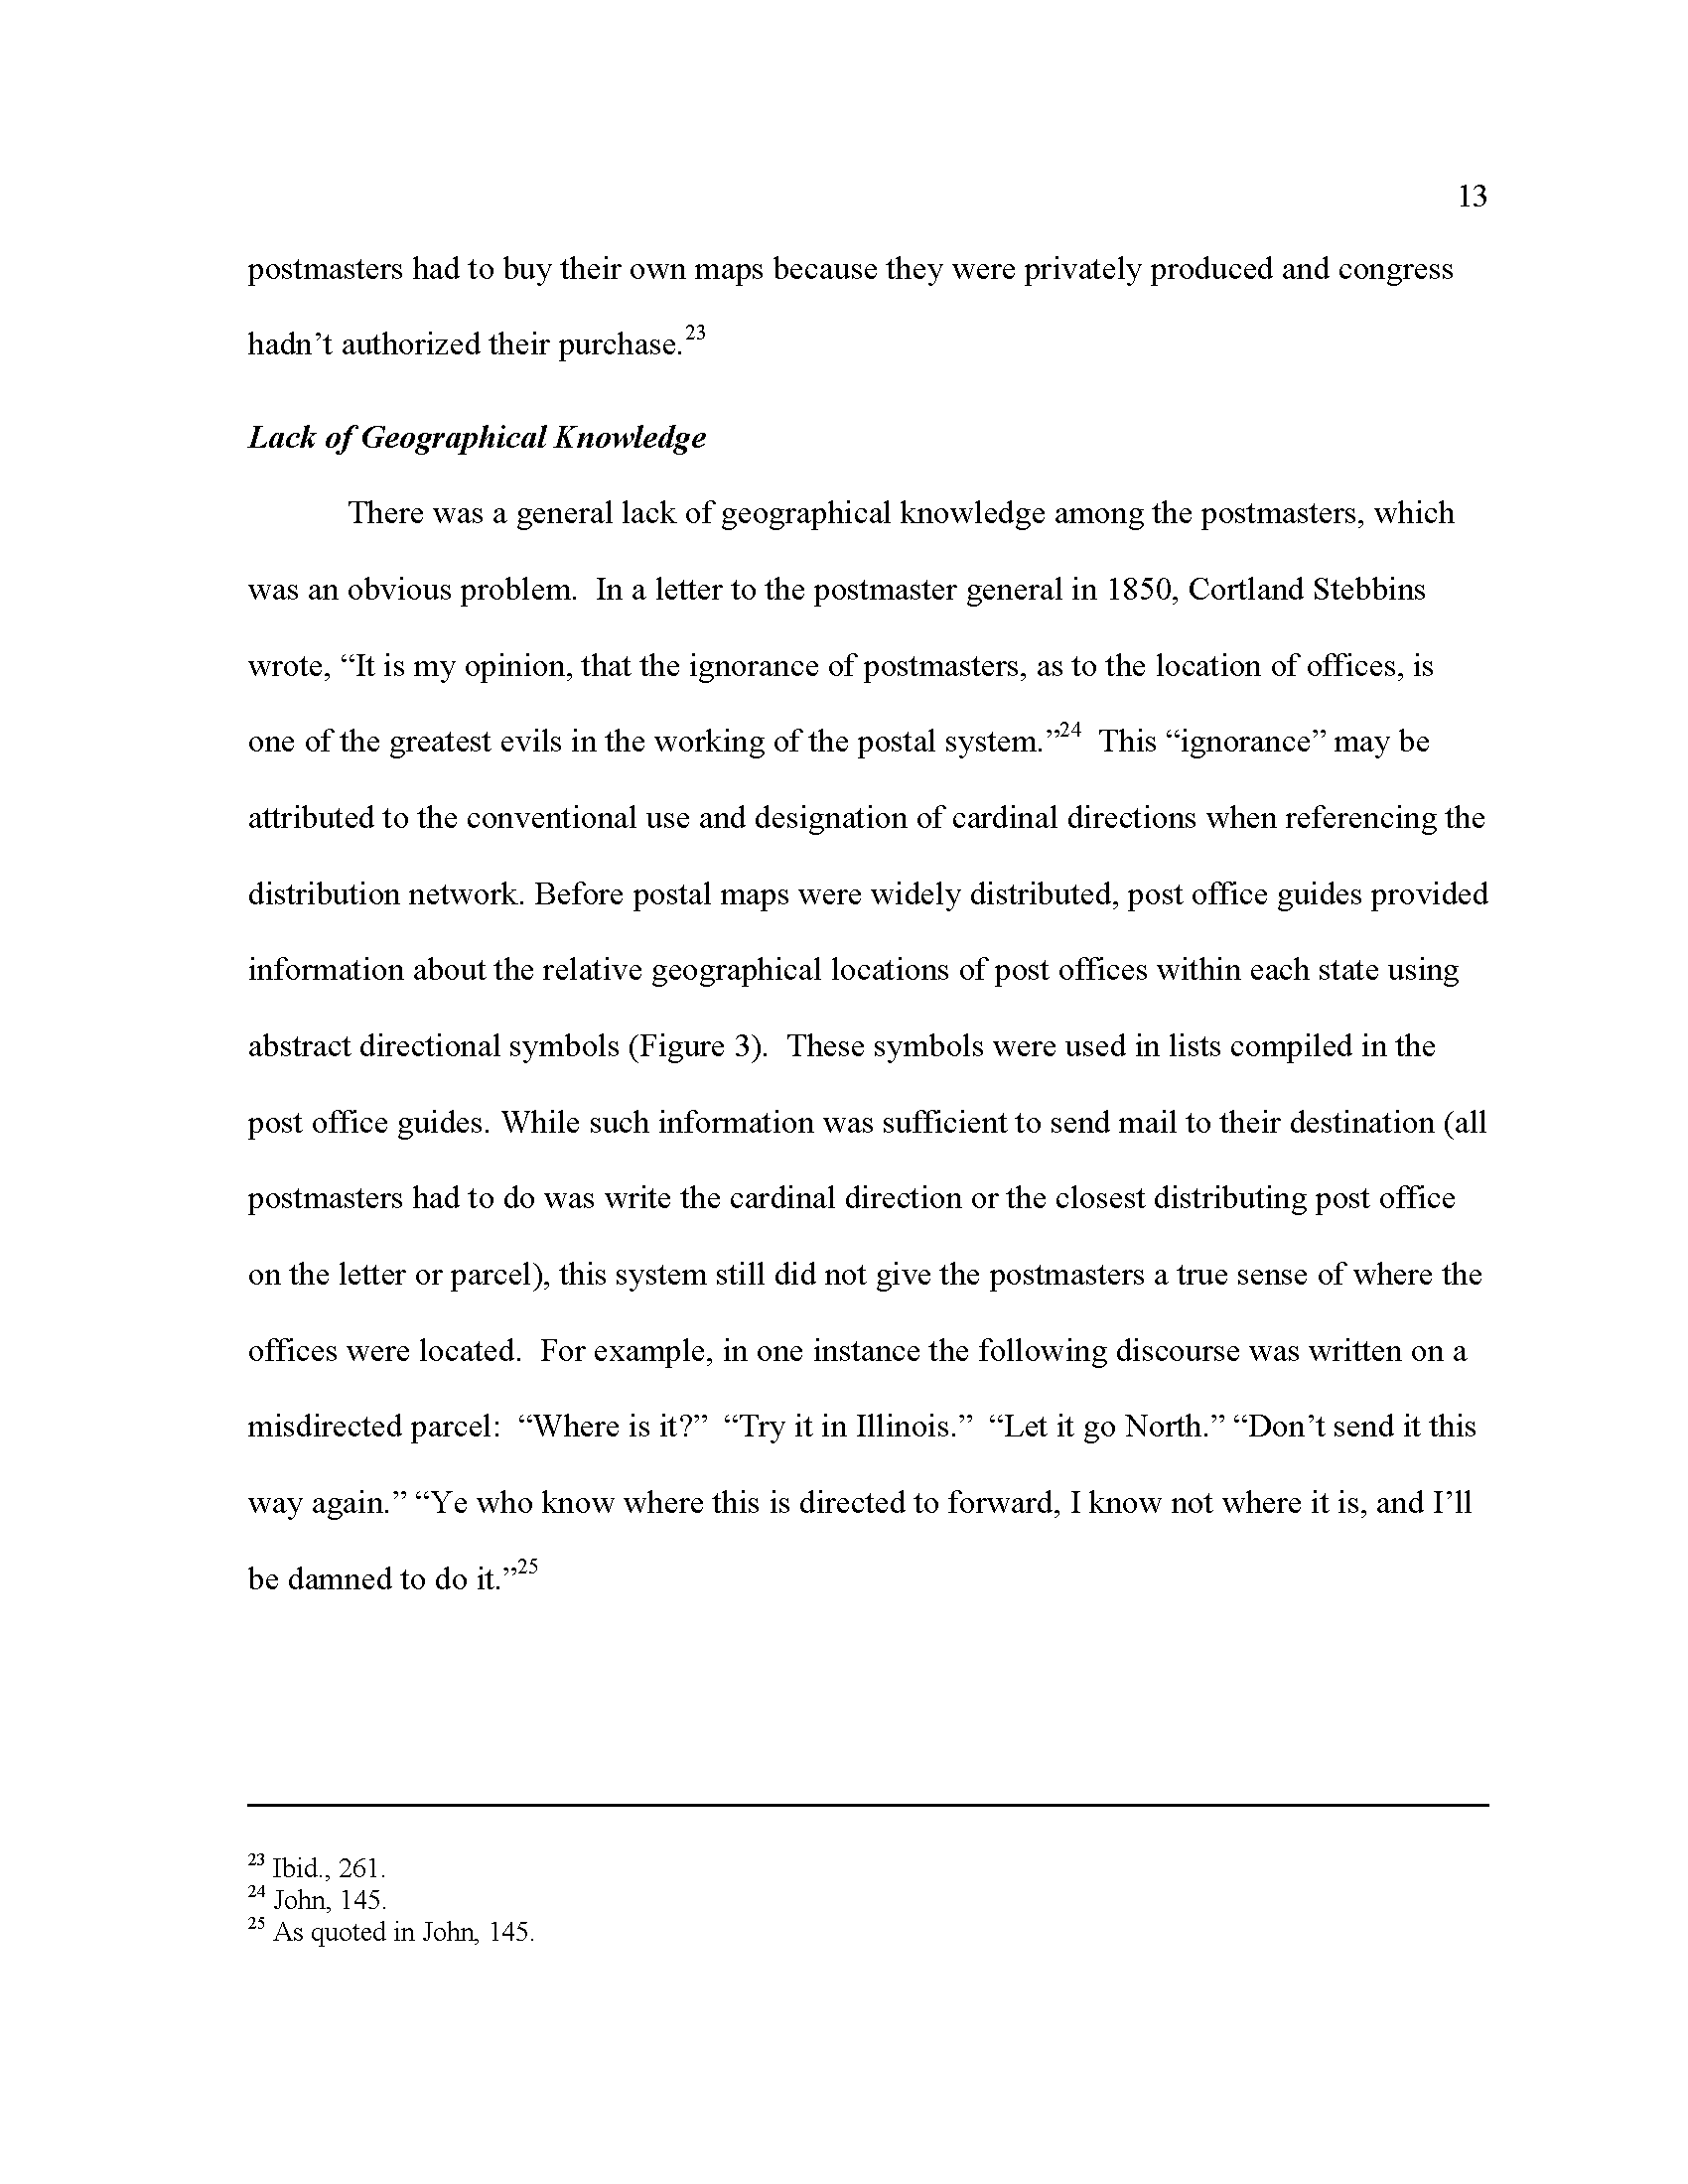 Thesis Final_Page_017.png